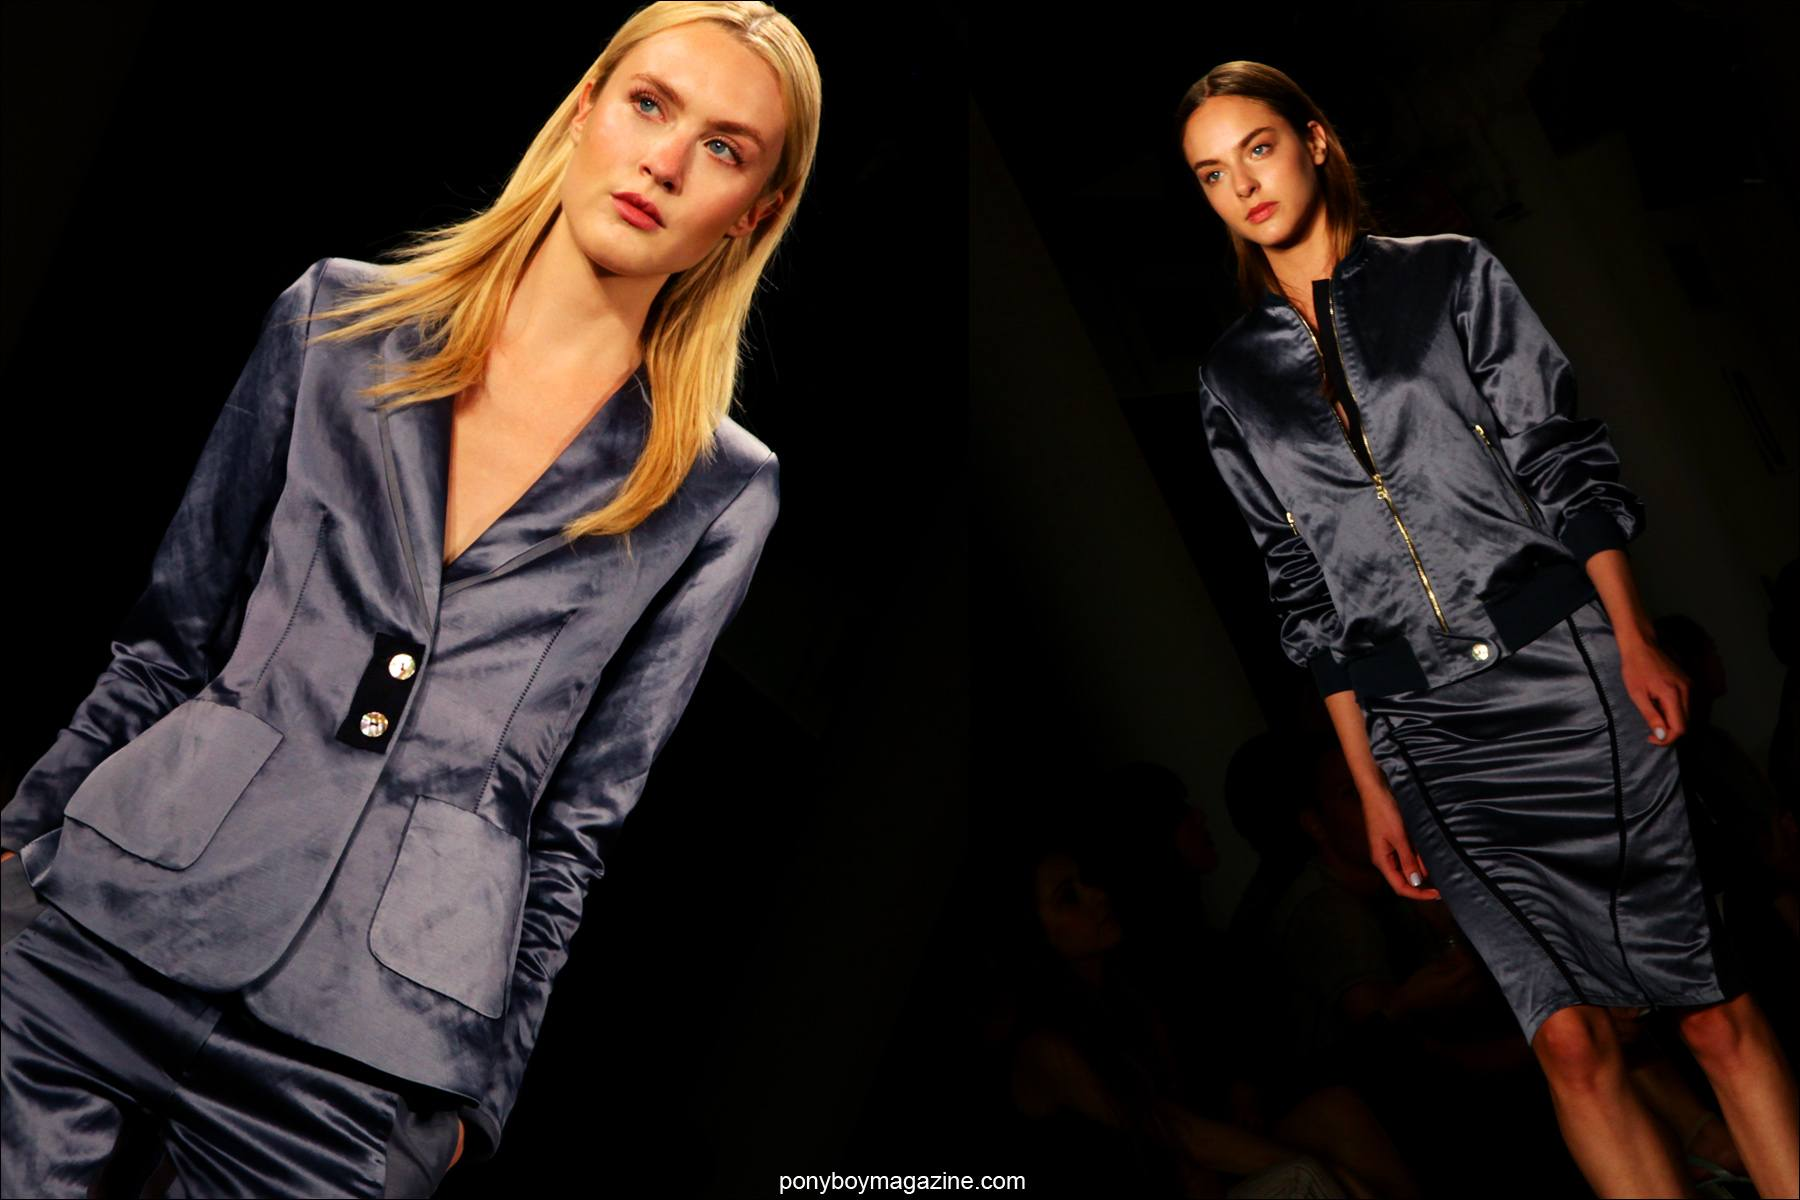 Blue satin on the runway at Costello Tagliapietra S/S 2015. Photos taken at Milk Studios by Alexander Thompson for Ponyboy Magazine.